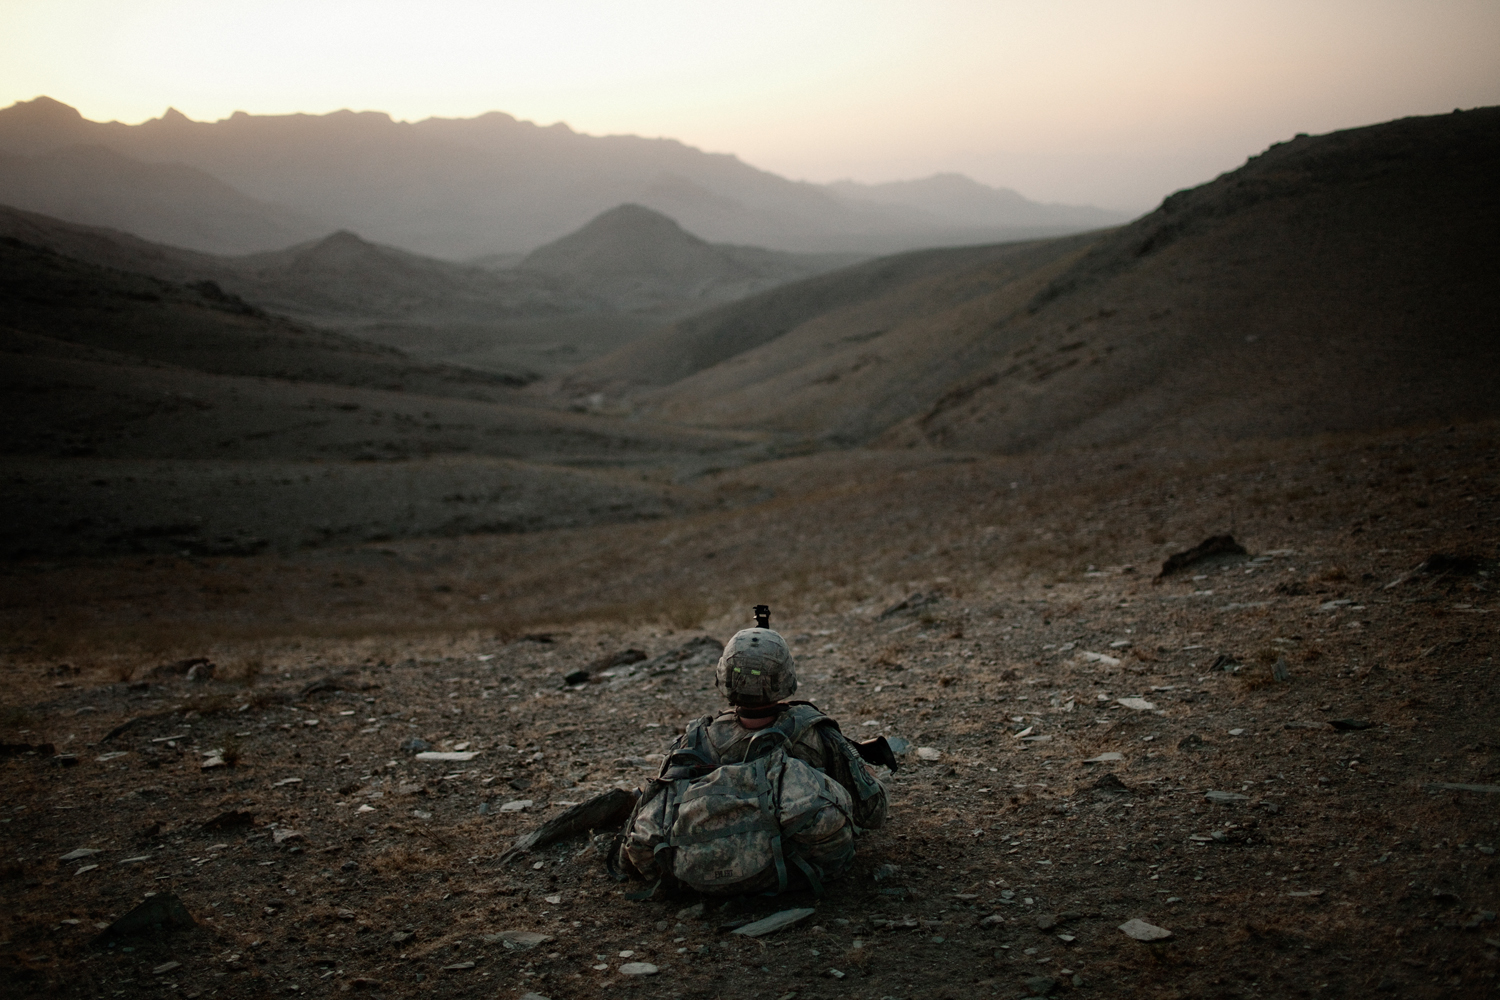 U.S. Army soldiers patrol in the Tangi Valley, Wardak Province, Afghanistan.